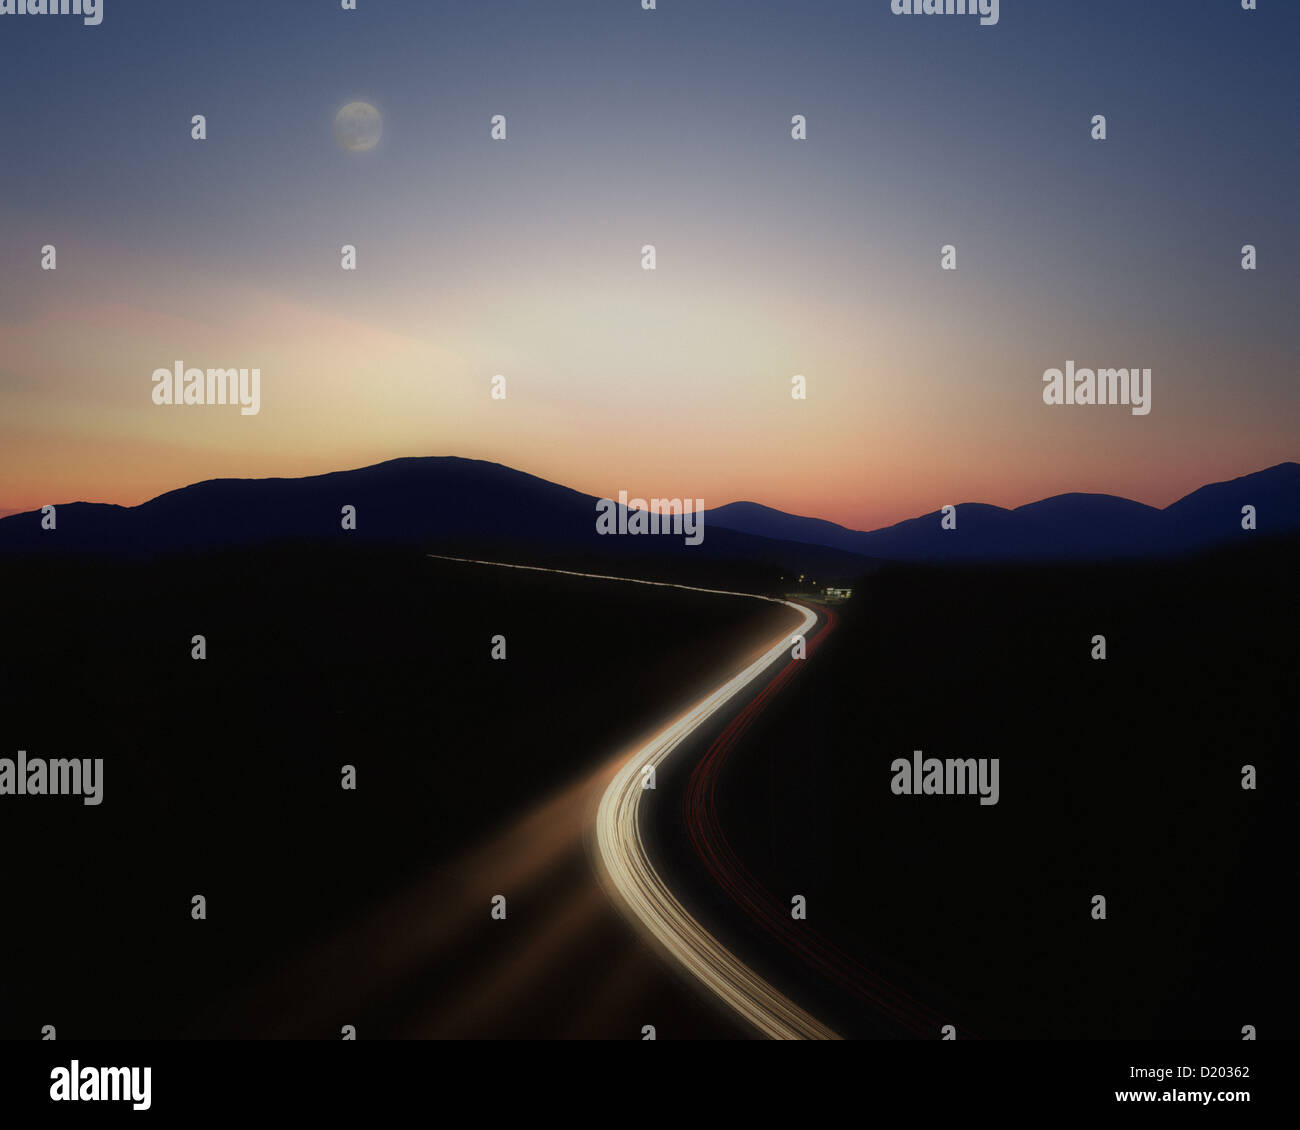 DE - BAVARIA: Autobahn by night (Transport Concept) - Stock Image